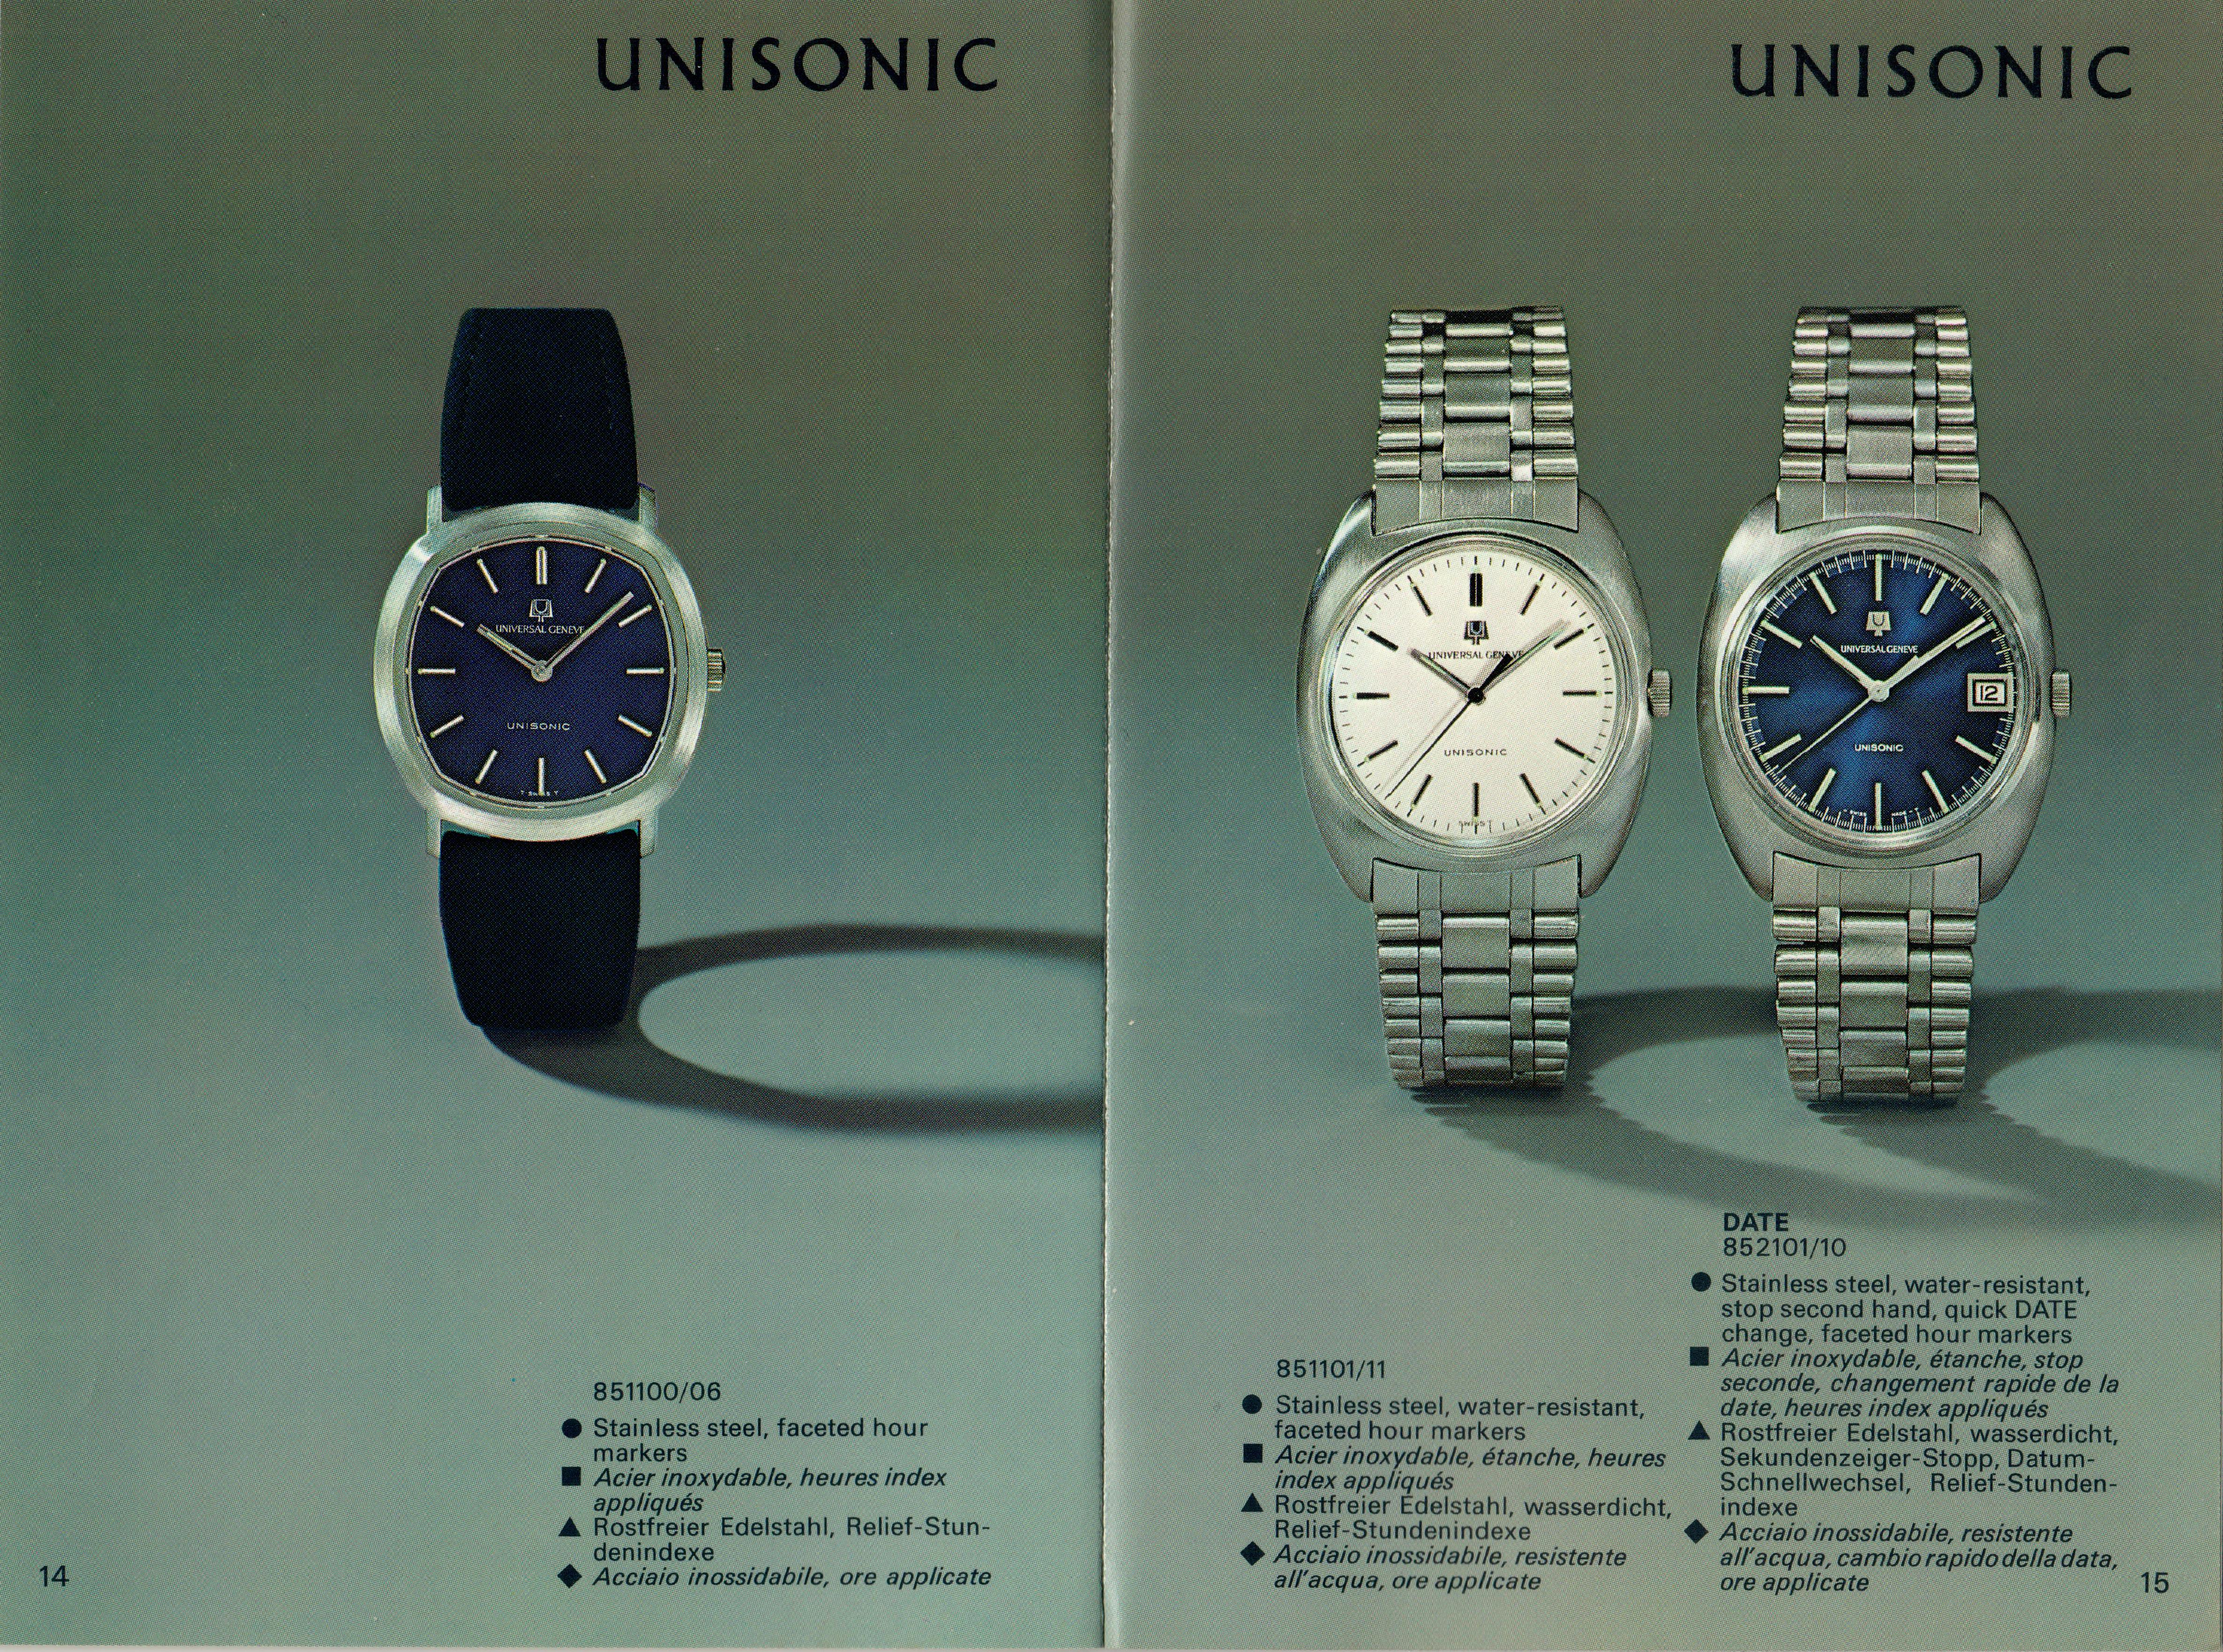 A series of Unisonic watches